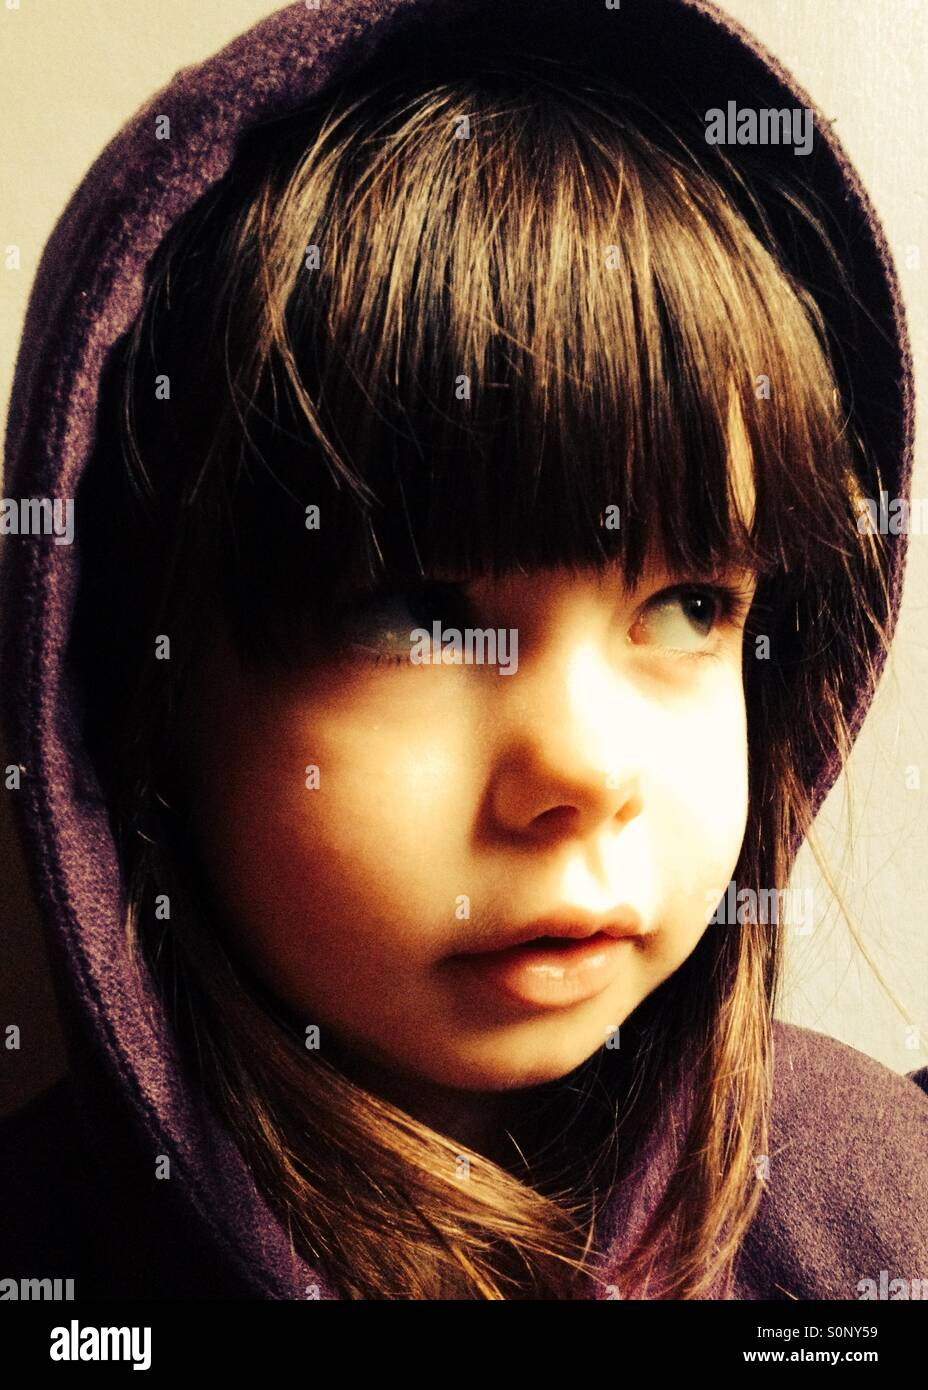 Young girl wearing hooded top - Stock Image